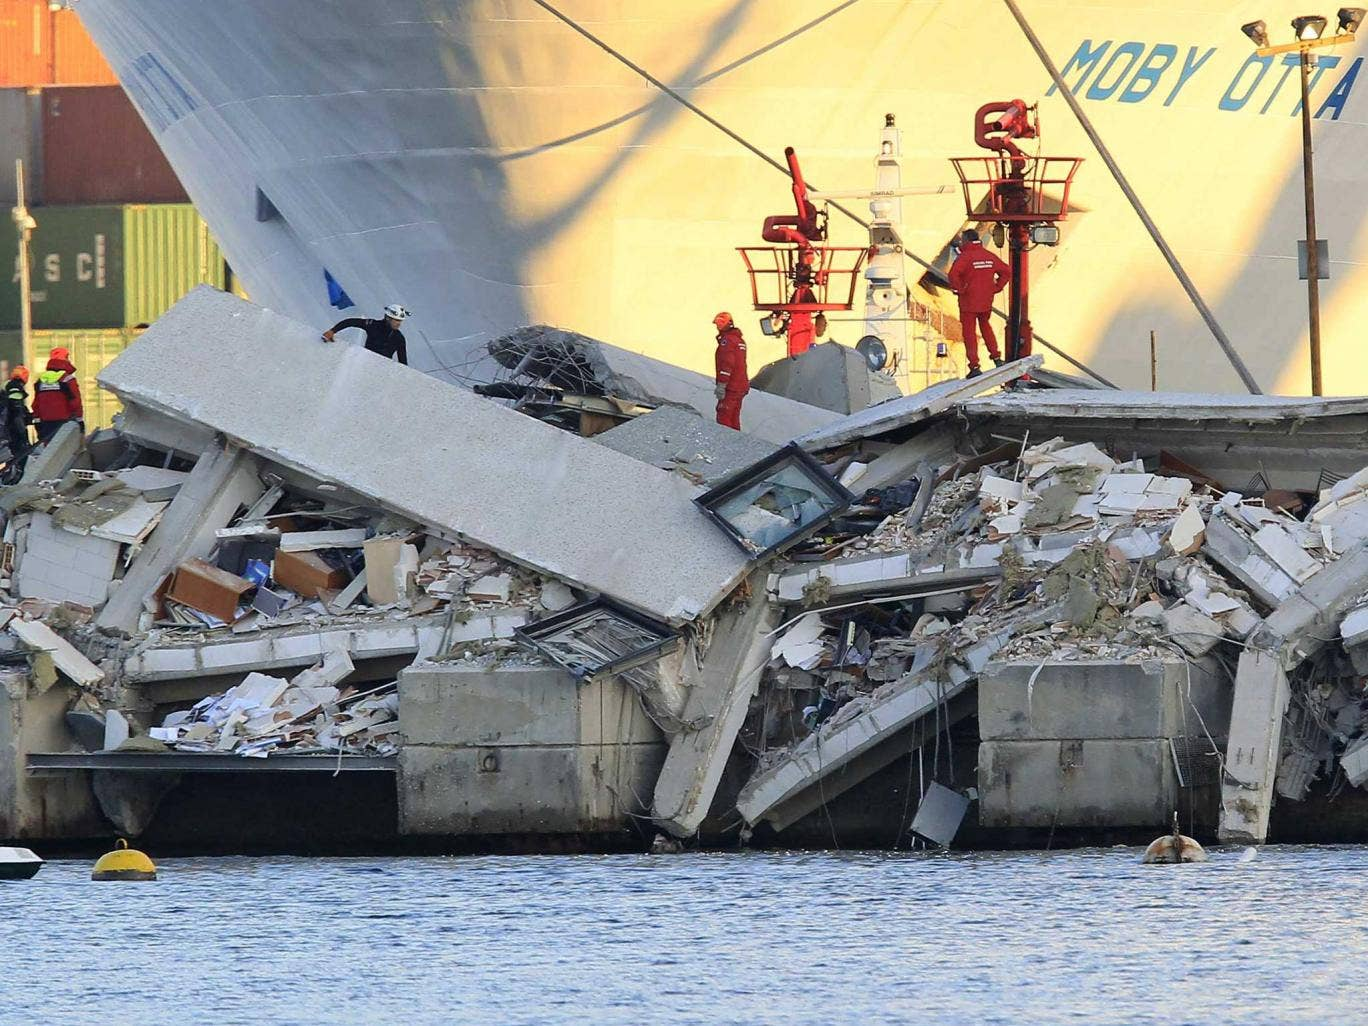 The collapsed control tower is pictured at Genoa's port